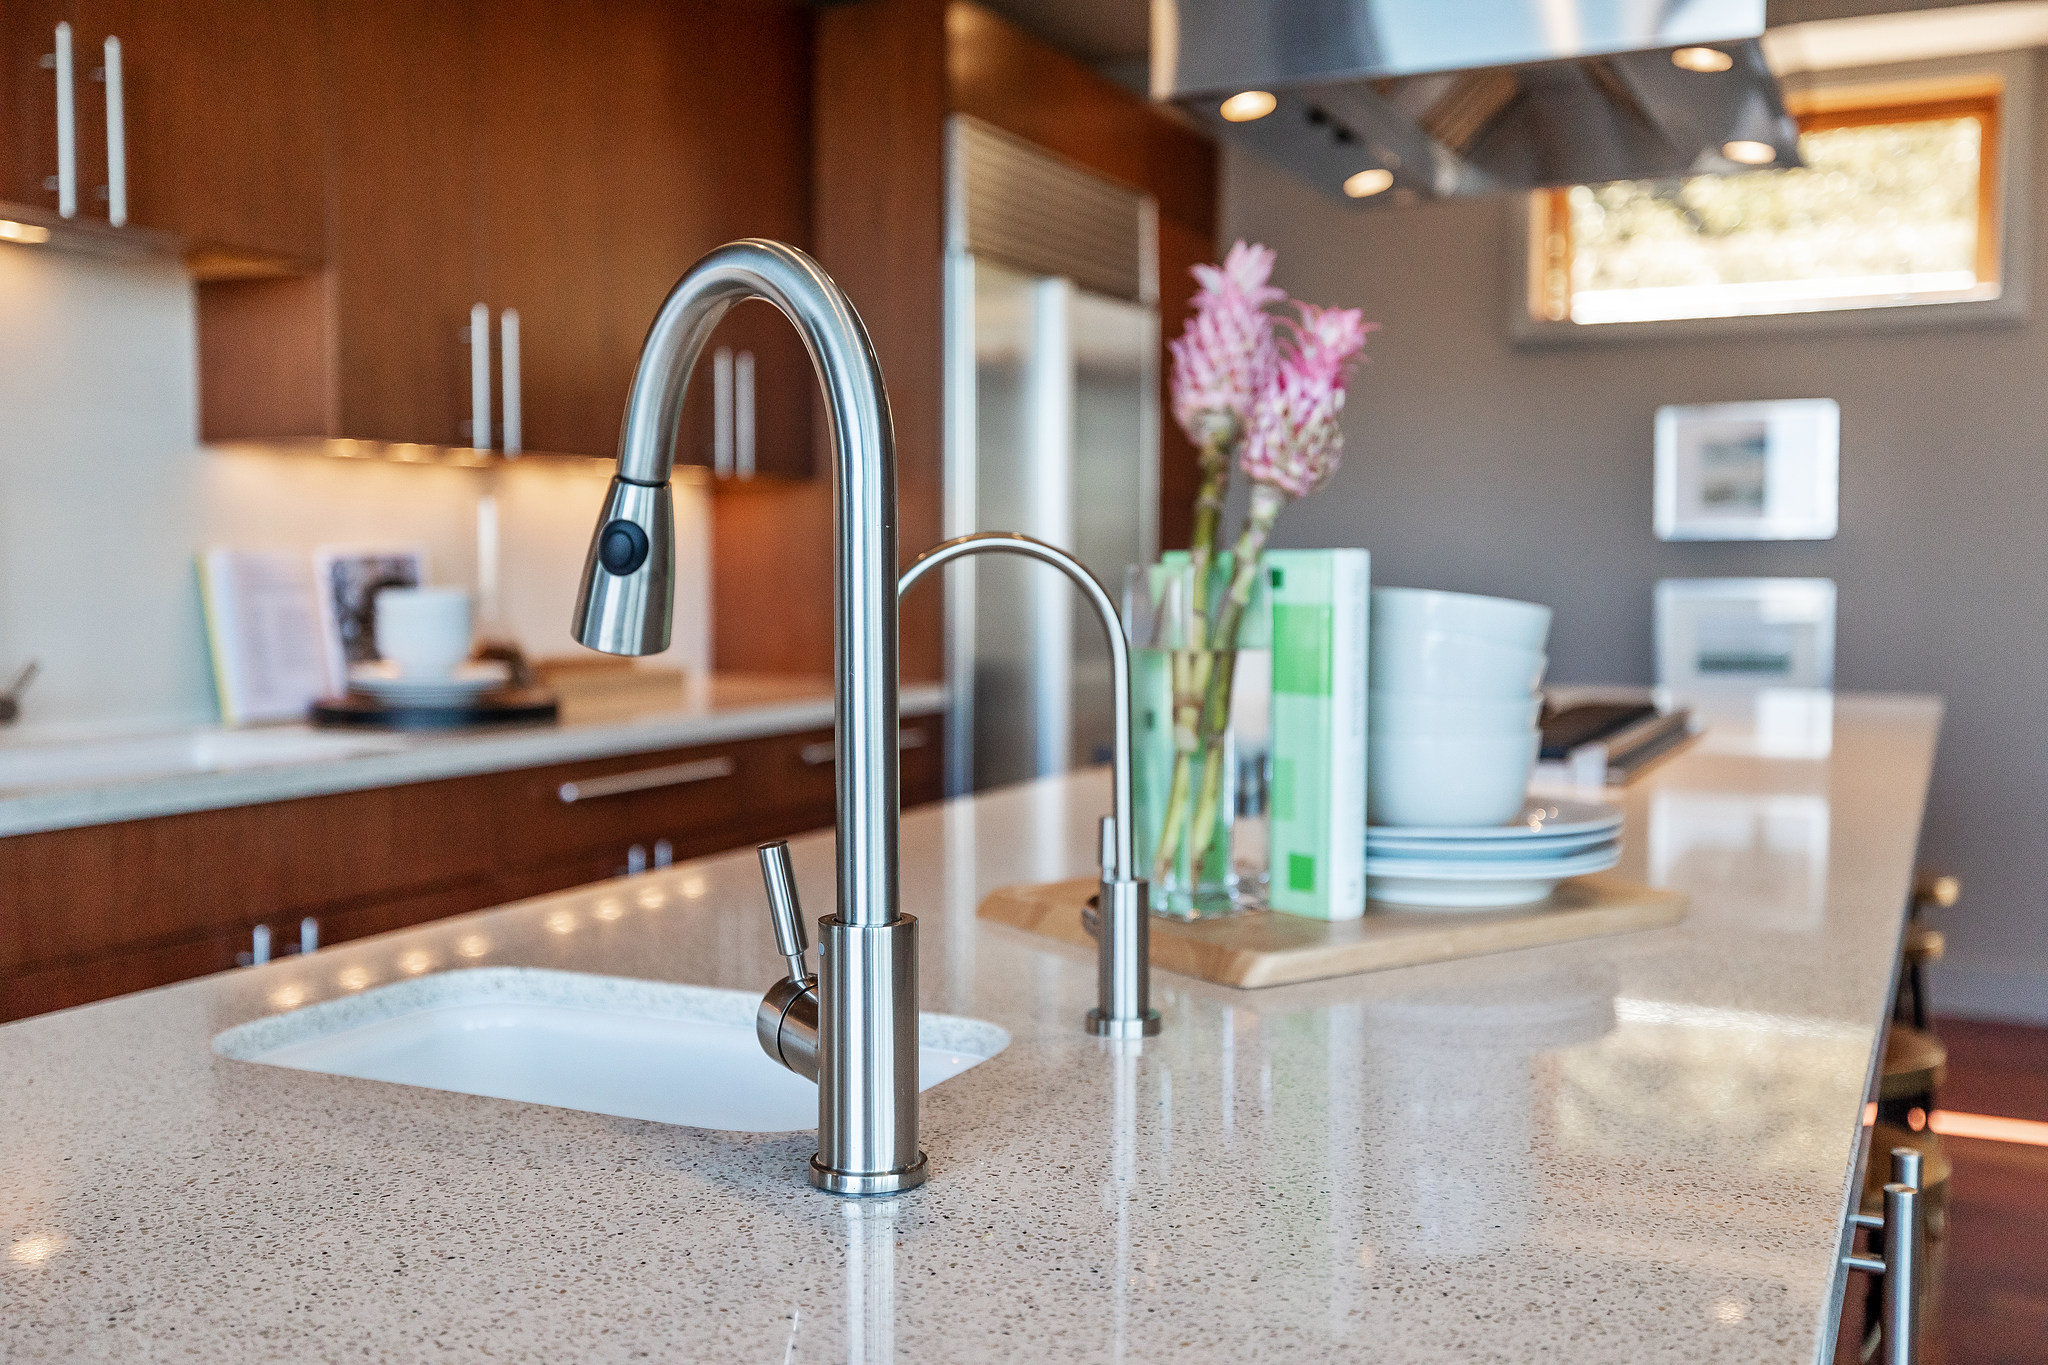 Up close image of small sink in kitchen with granite countertops and wood cabinets